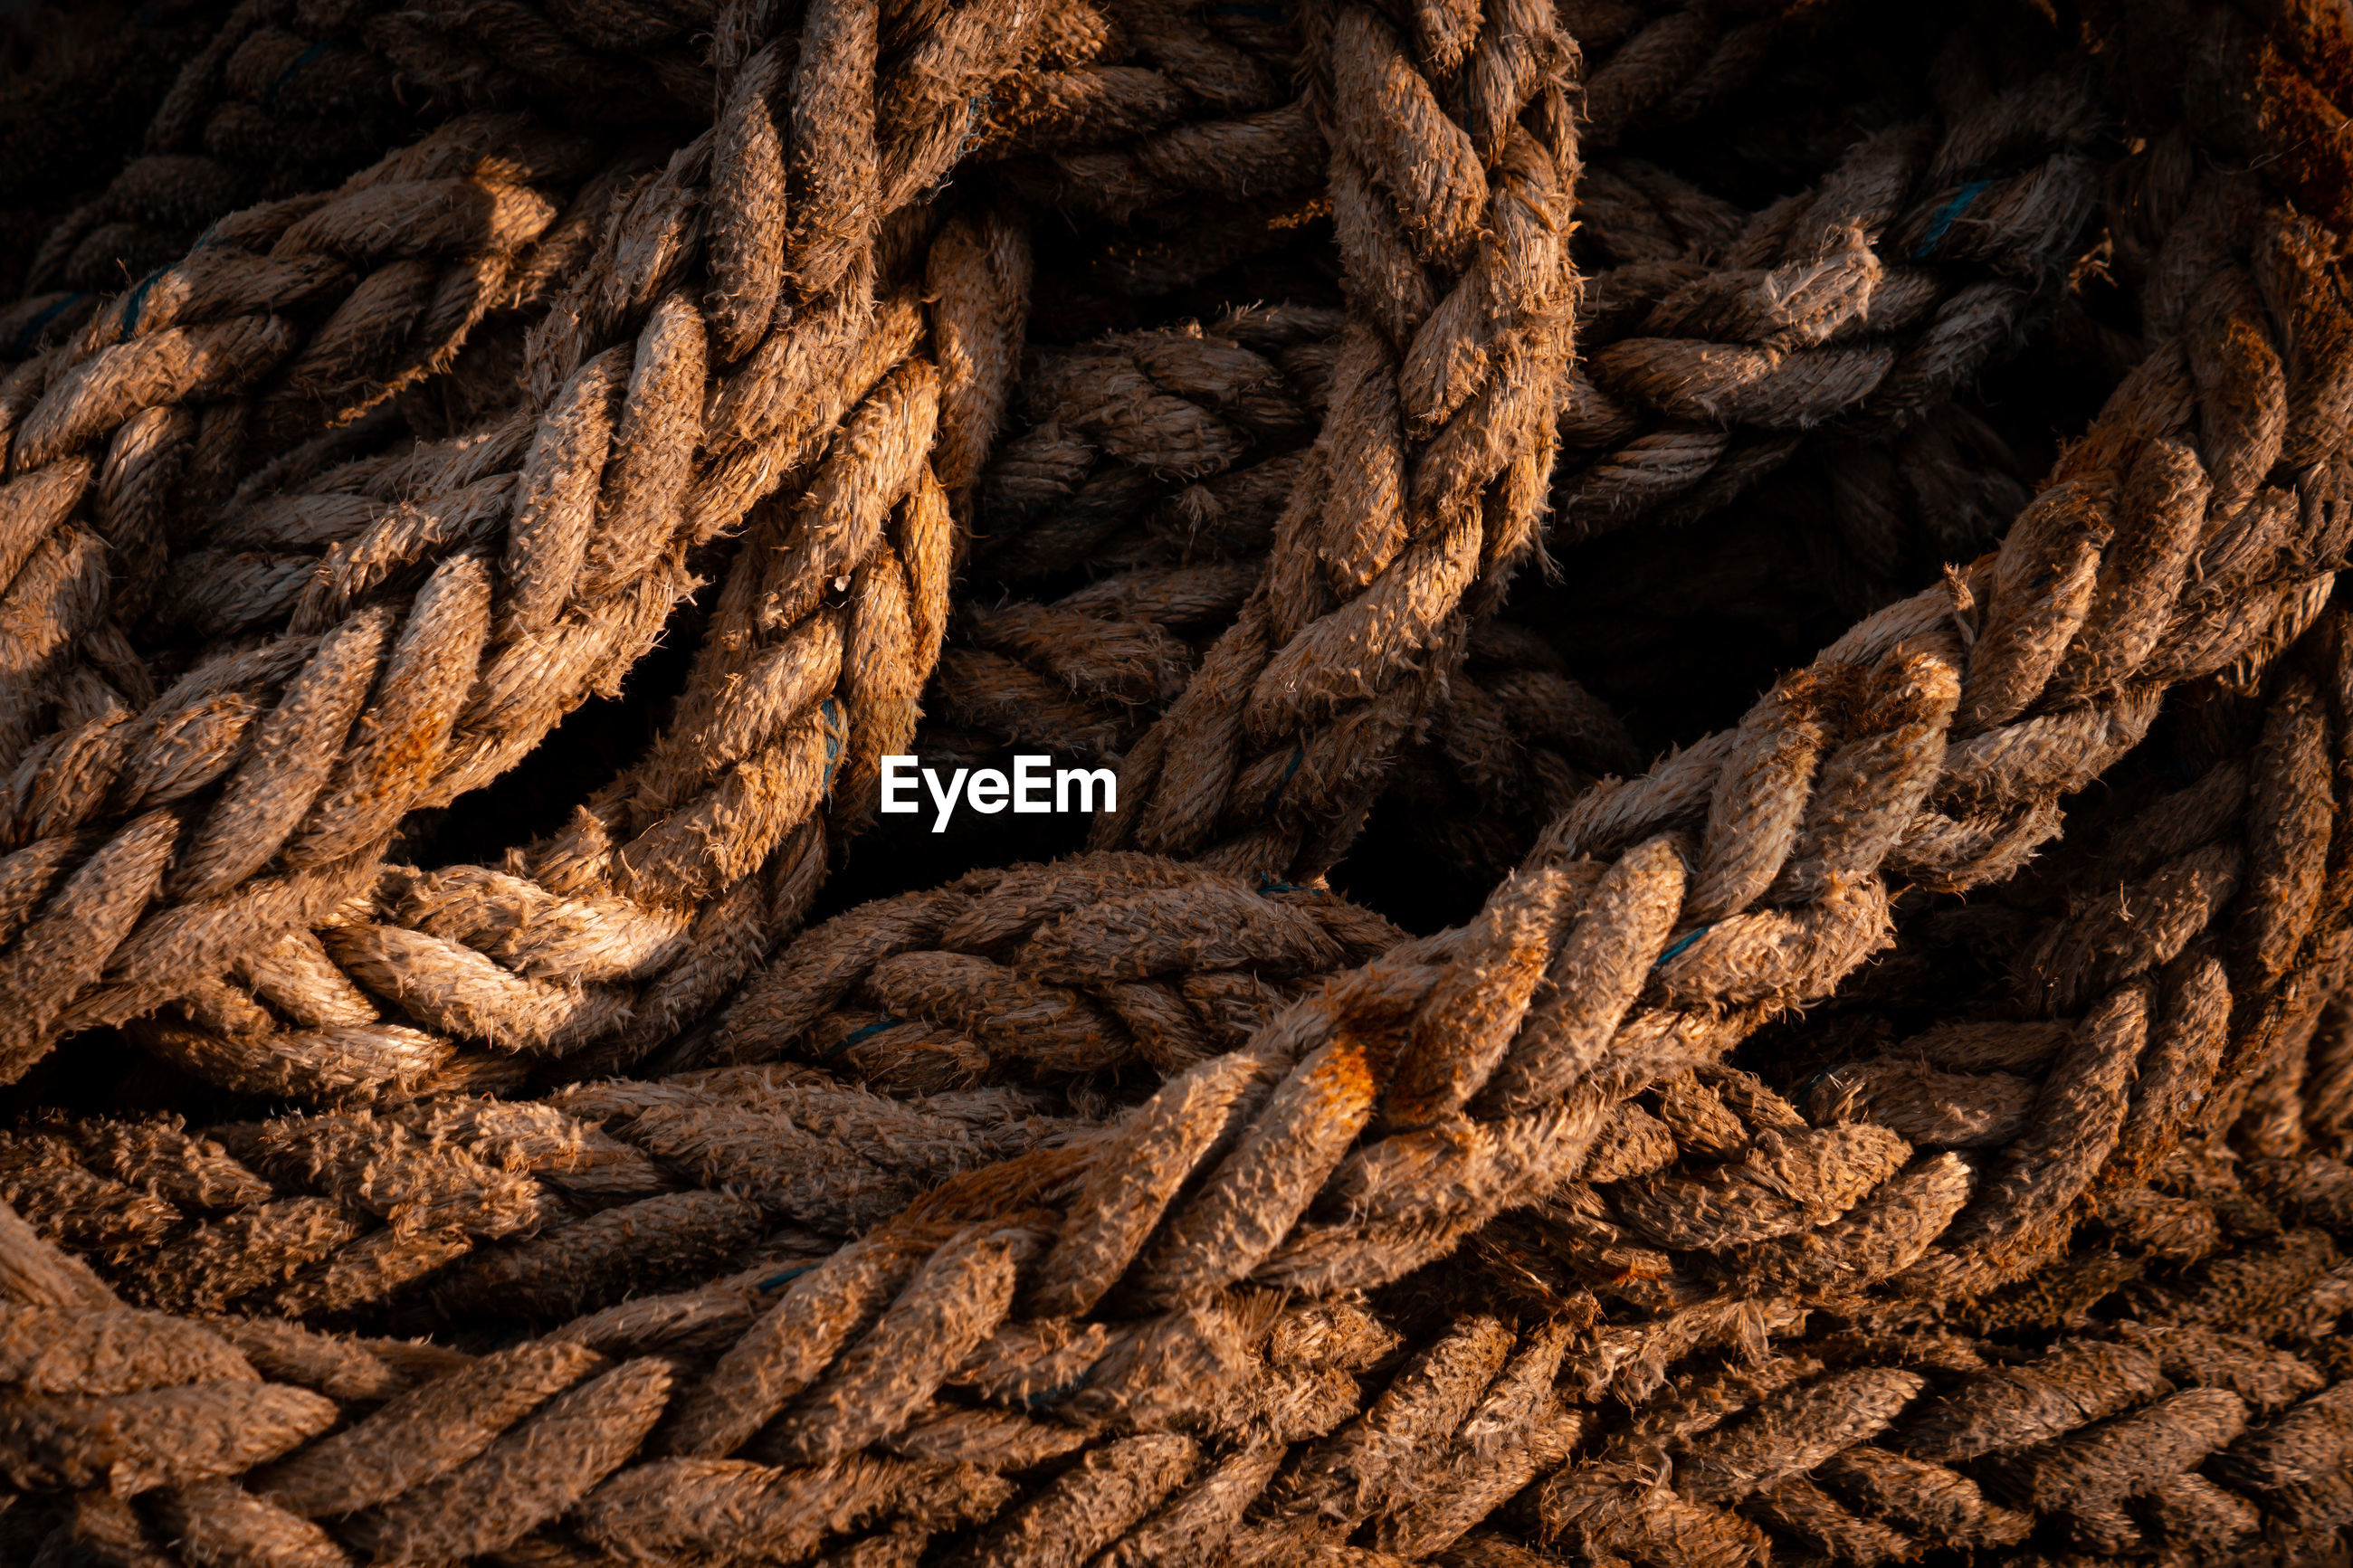 Old rope tangled texture close up